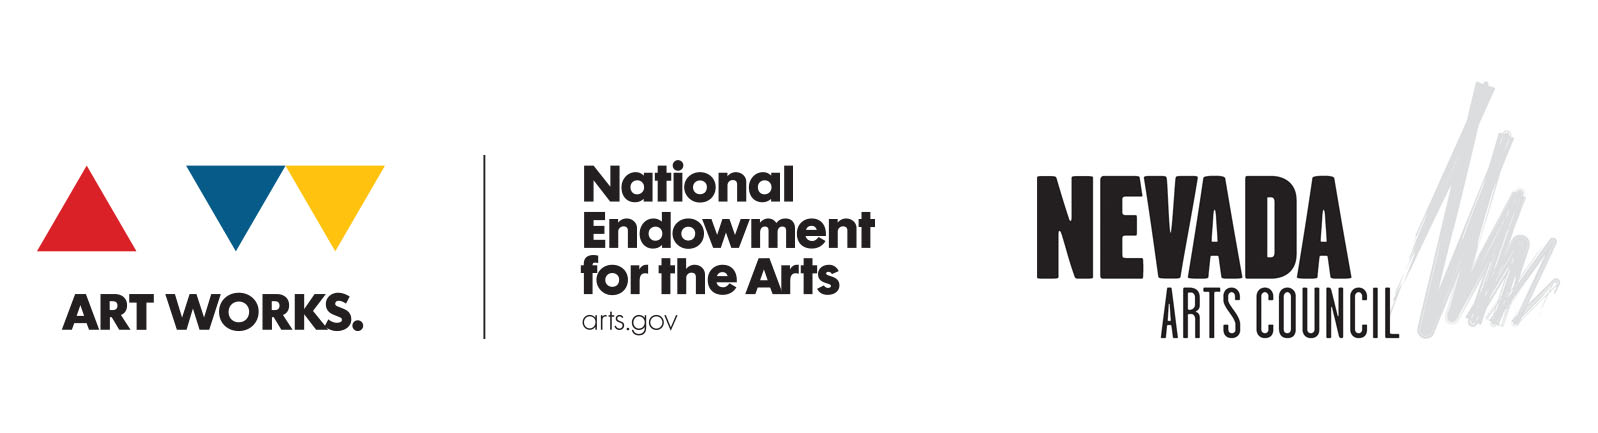 National Endowment for Arts | Nevada Arts Council